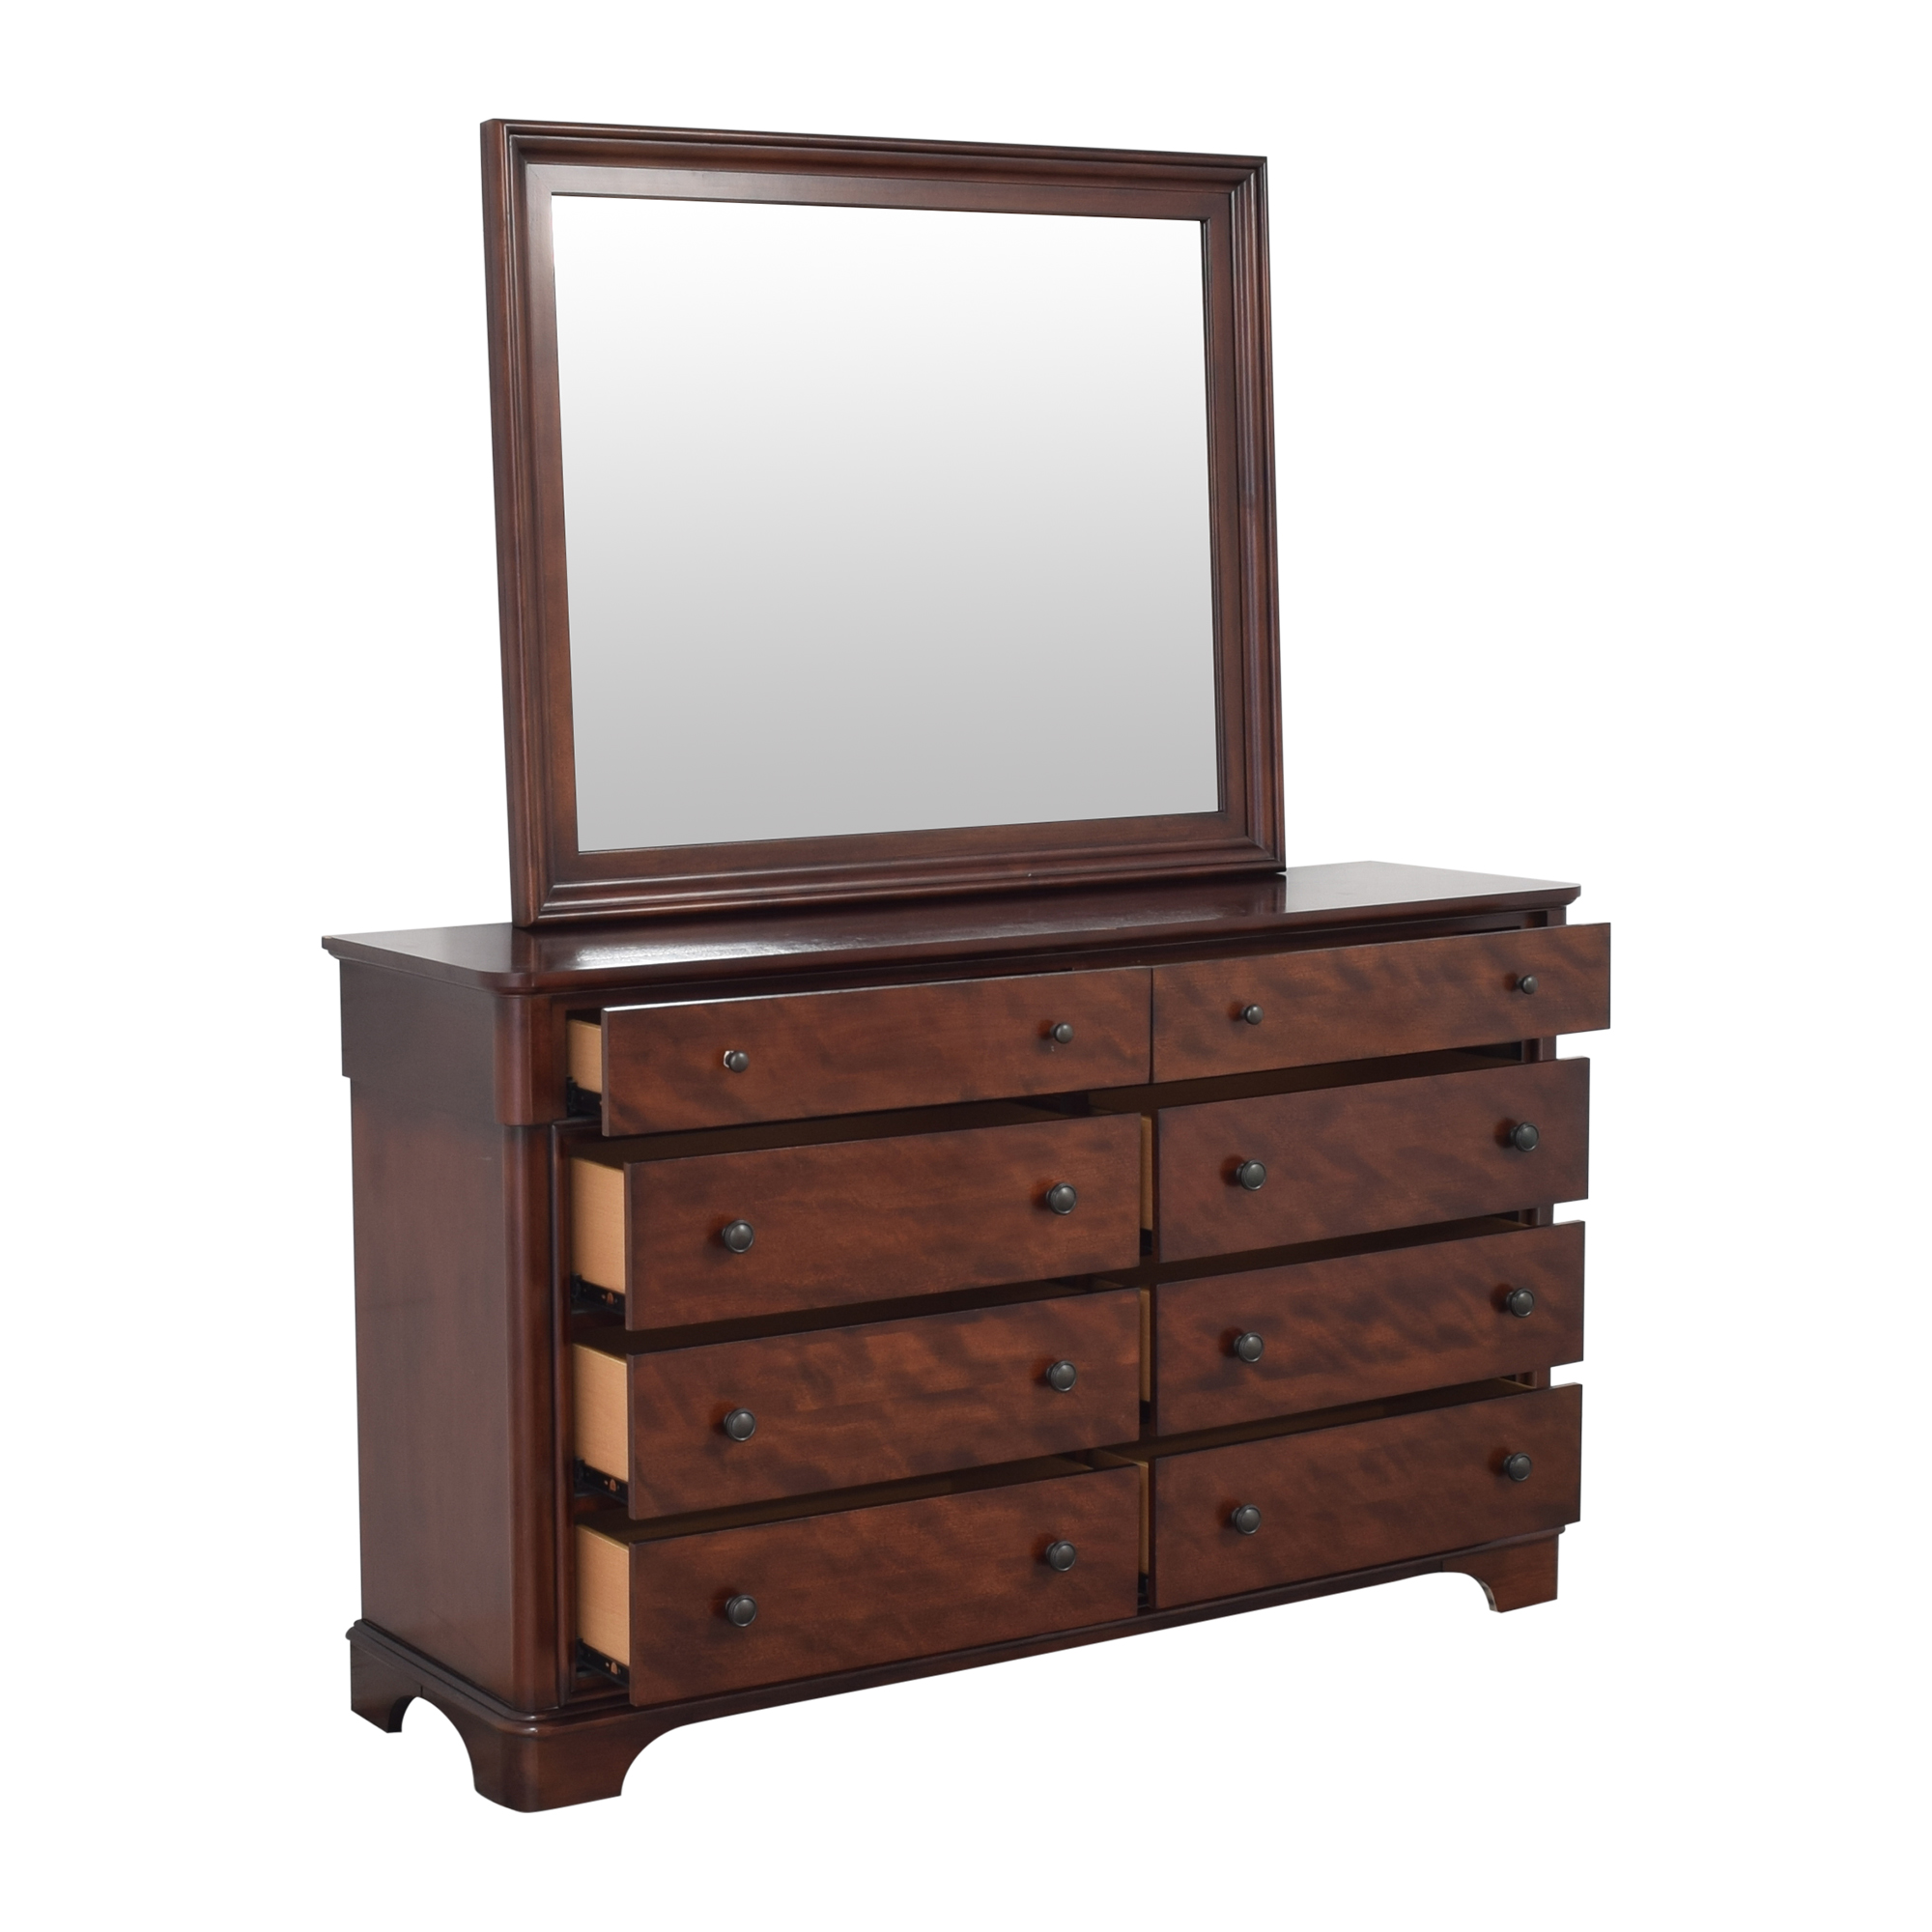 Legacy Classic Furniture Legacy Classic Furniture Double Dresser with Mirror pa